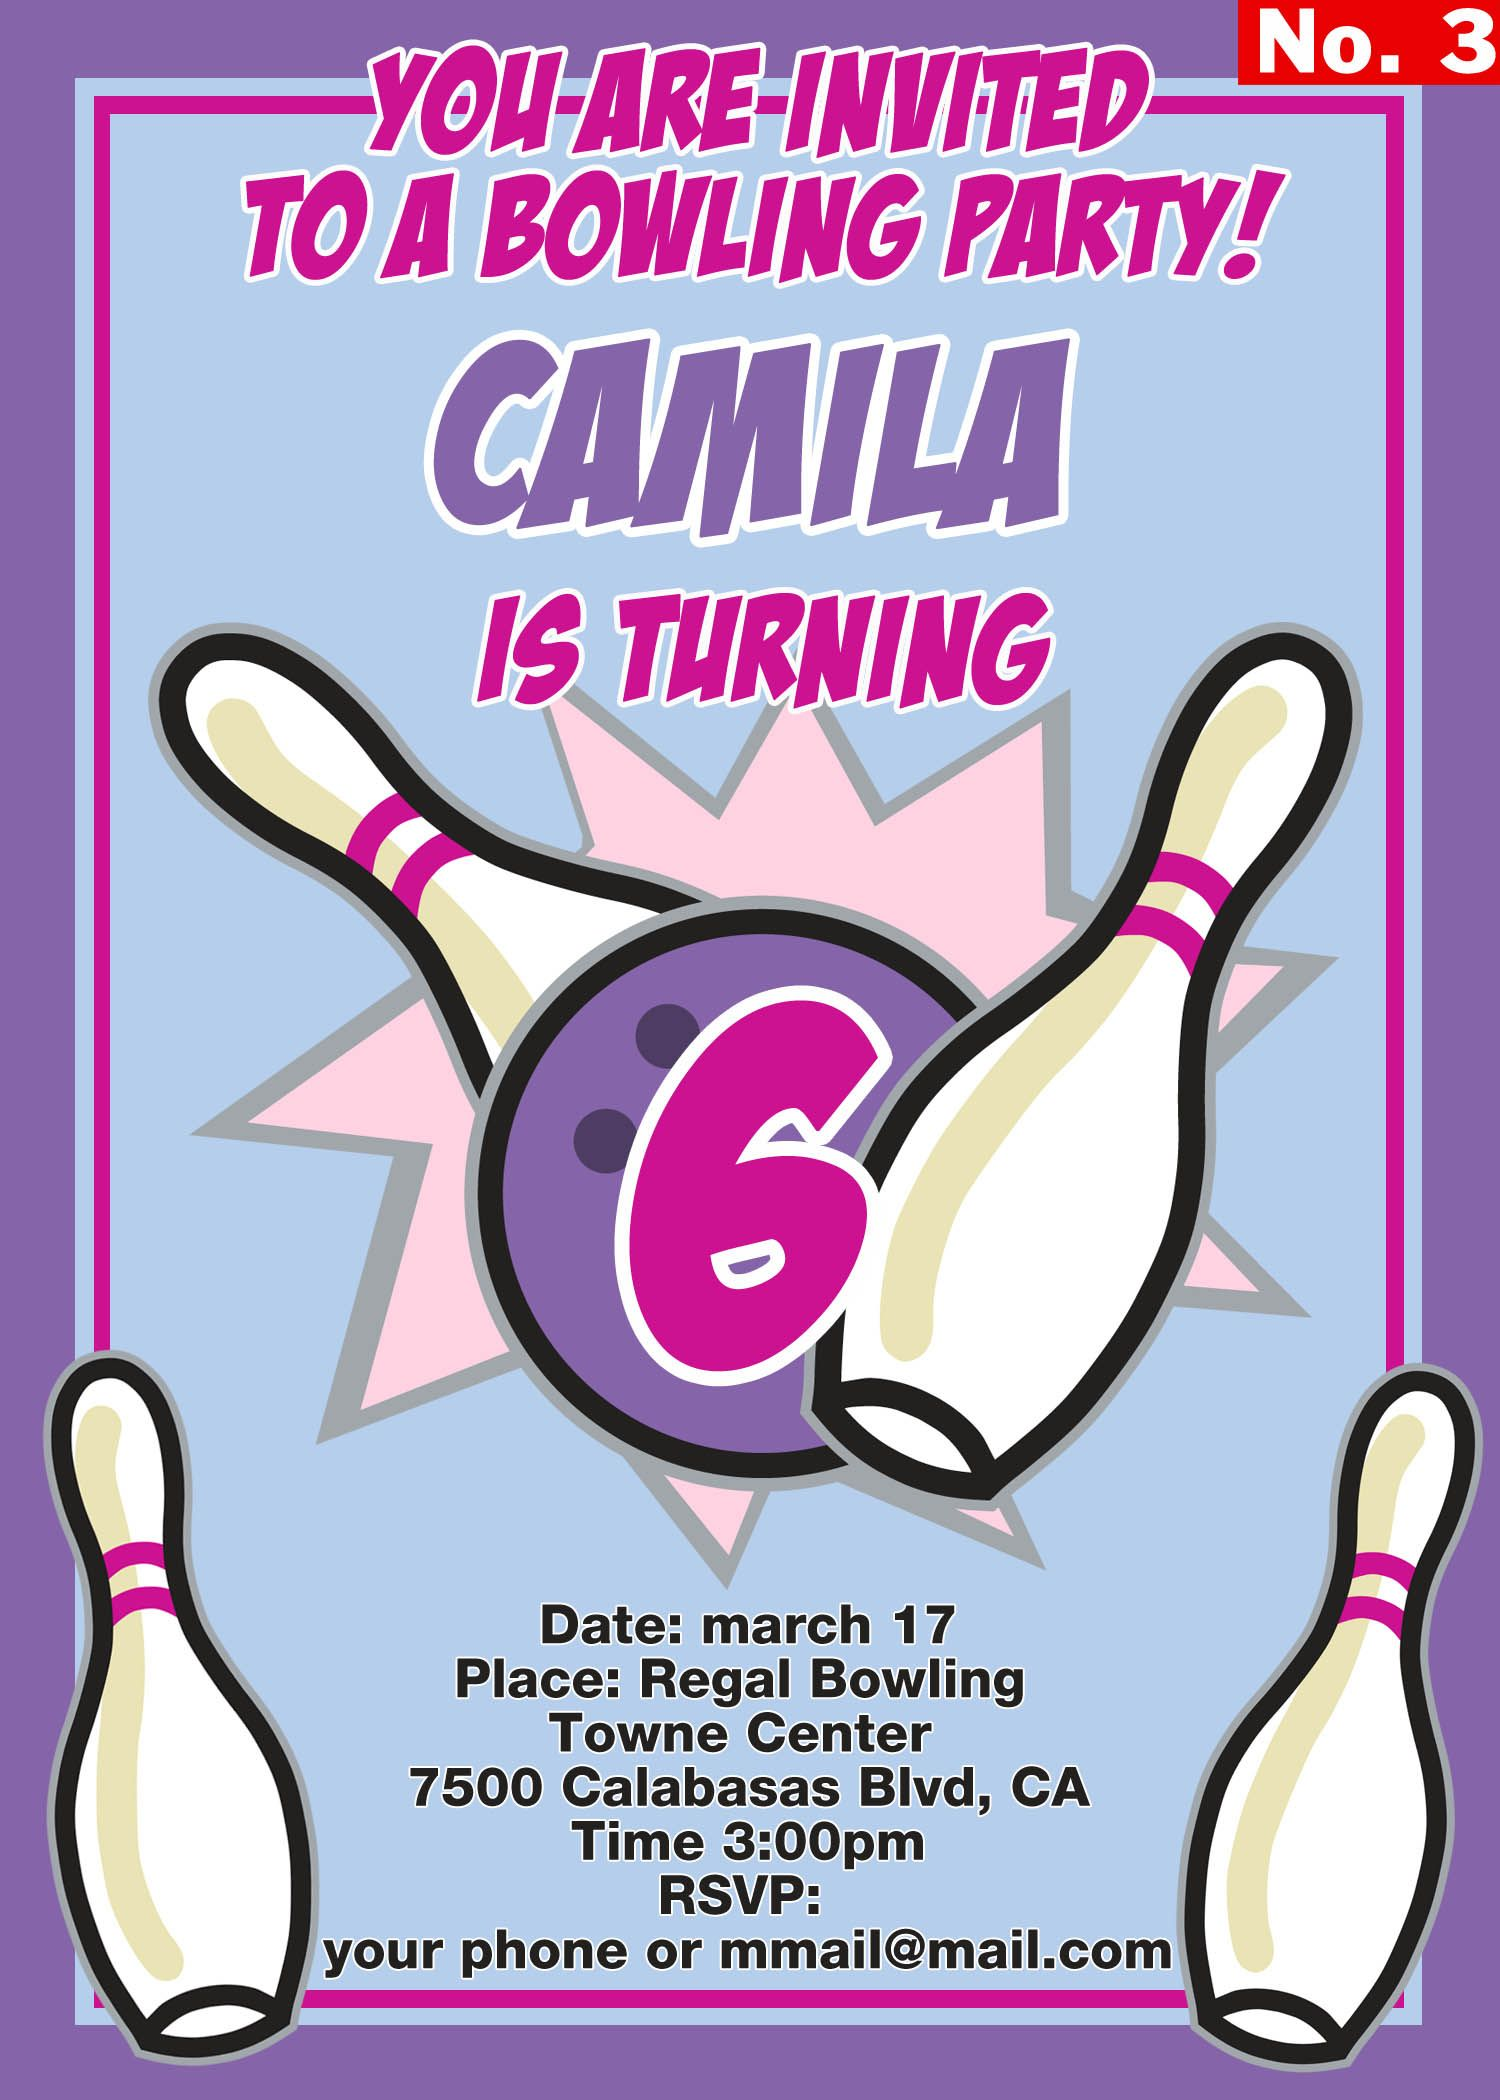 Bowling birthday party invitation for girls purple and pink colors bowling birthday party invitation for girls purple and pink colors customizable wording digital file will be send to your email and ready to print by filmwisefo Choice Image